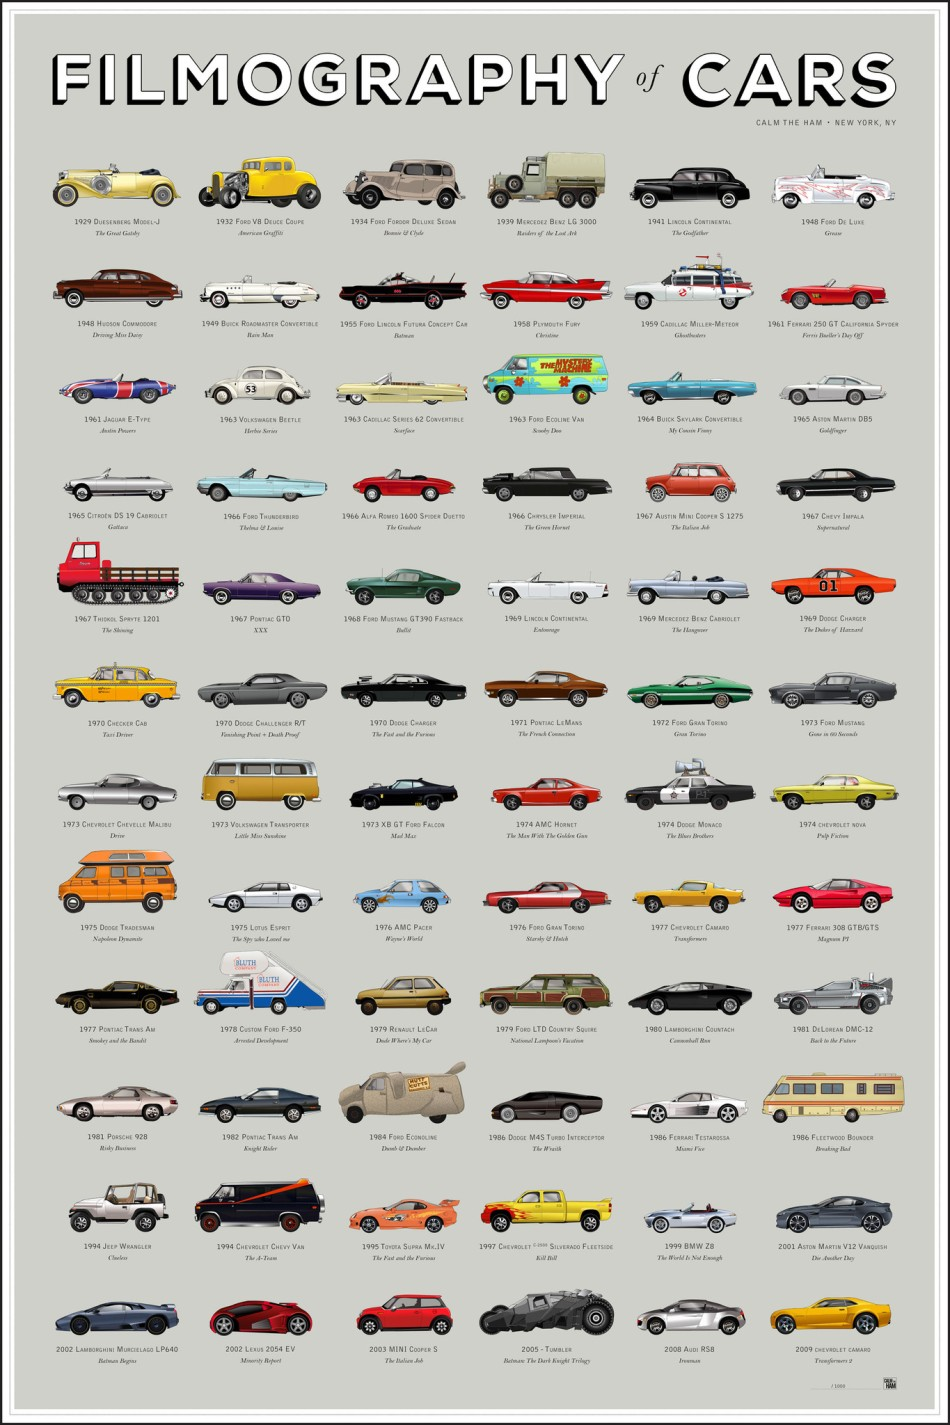 filmography-of-cars by calm the ham